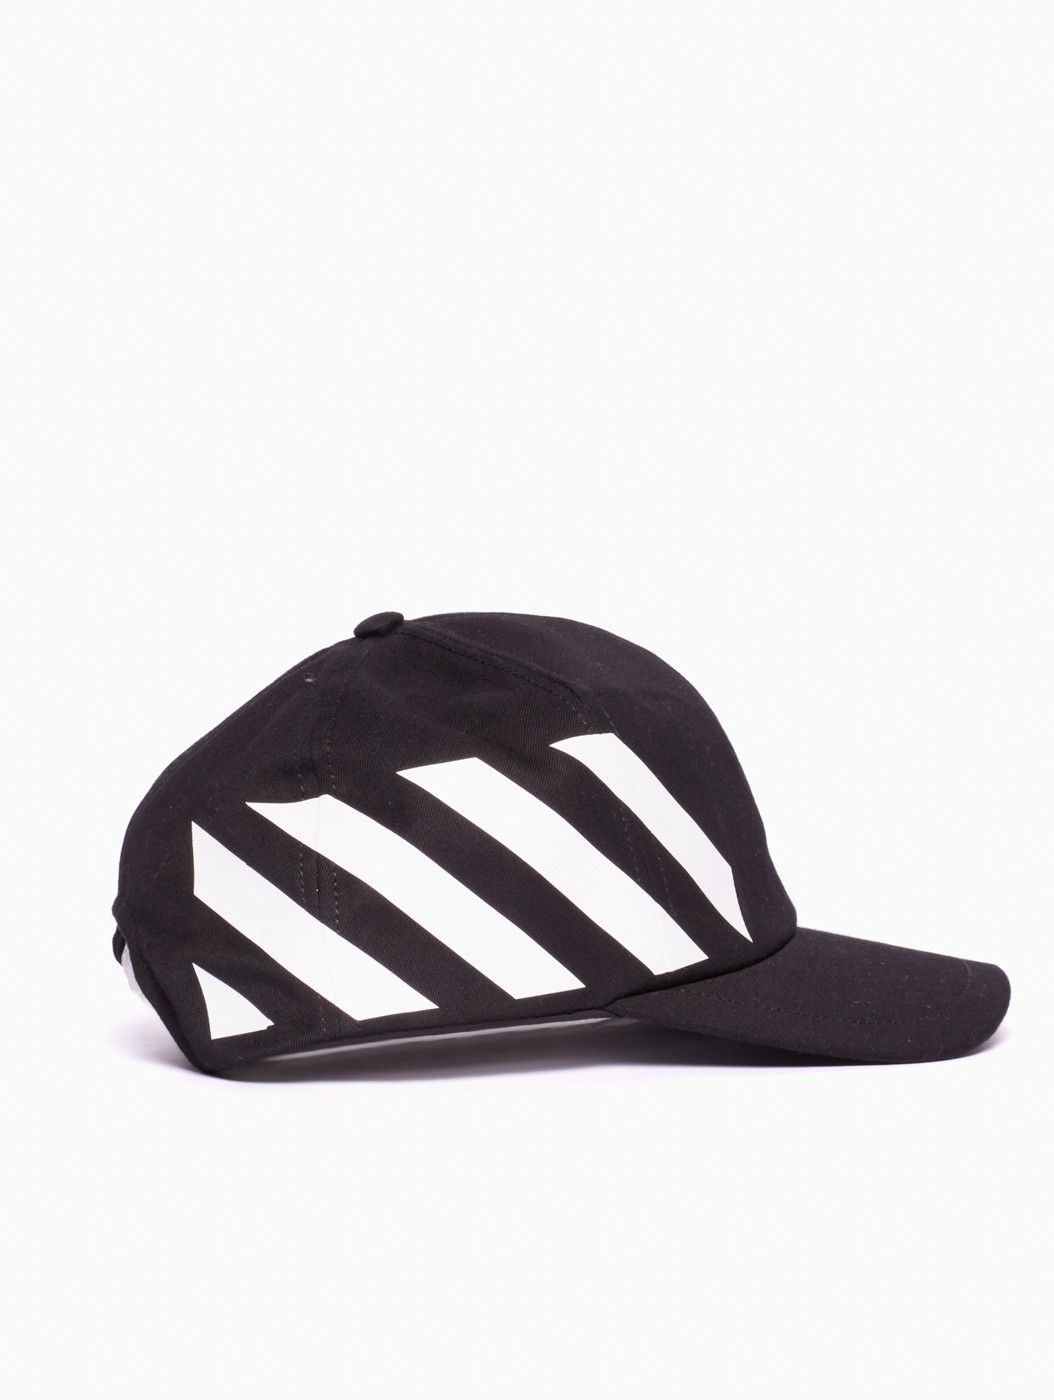 229bced3962 Baseball cap from the S S2016 Off-White c o Virgil Abloh